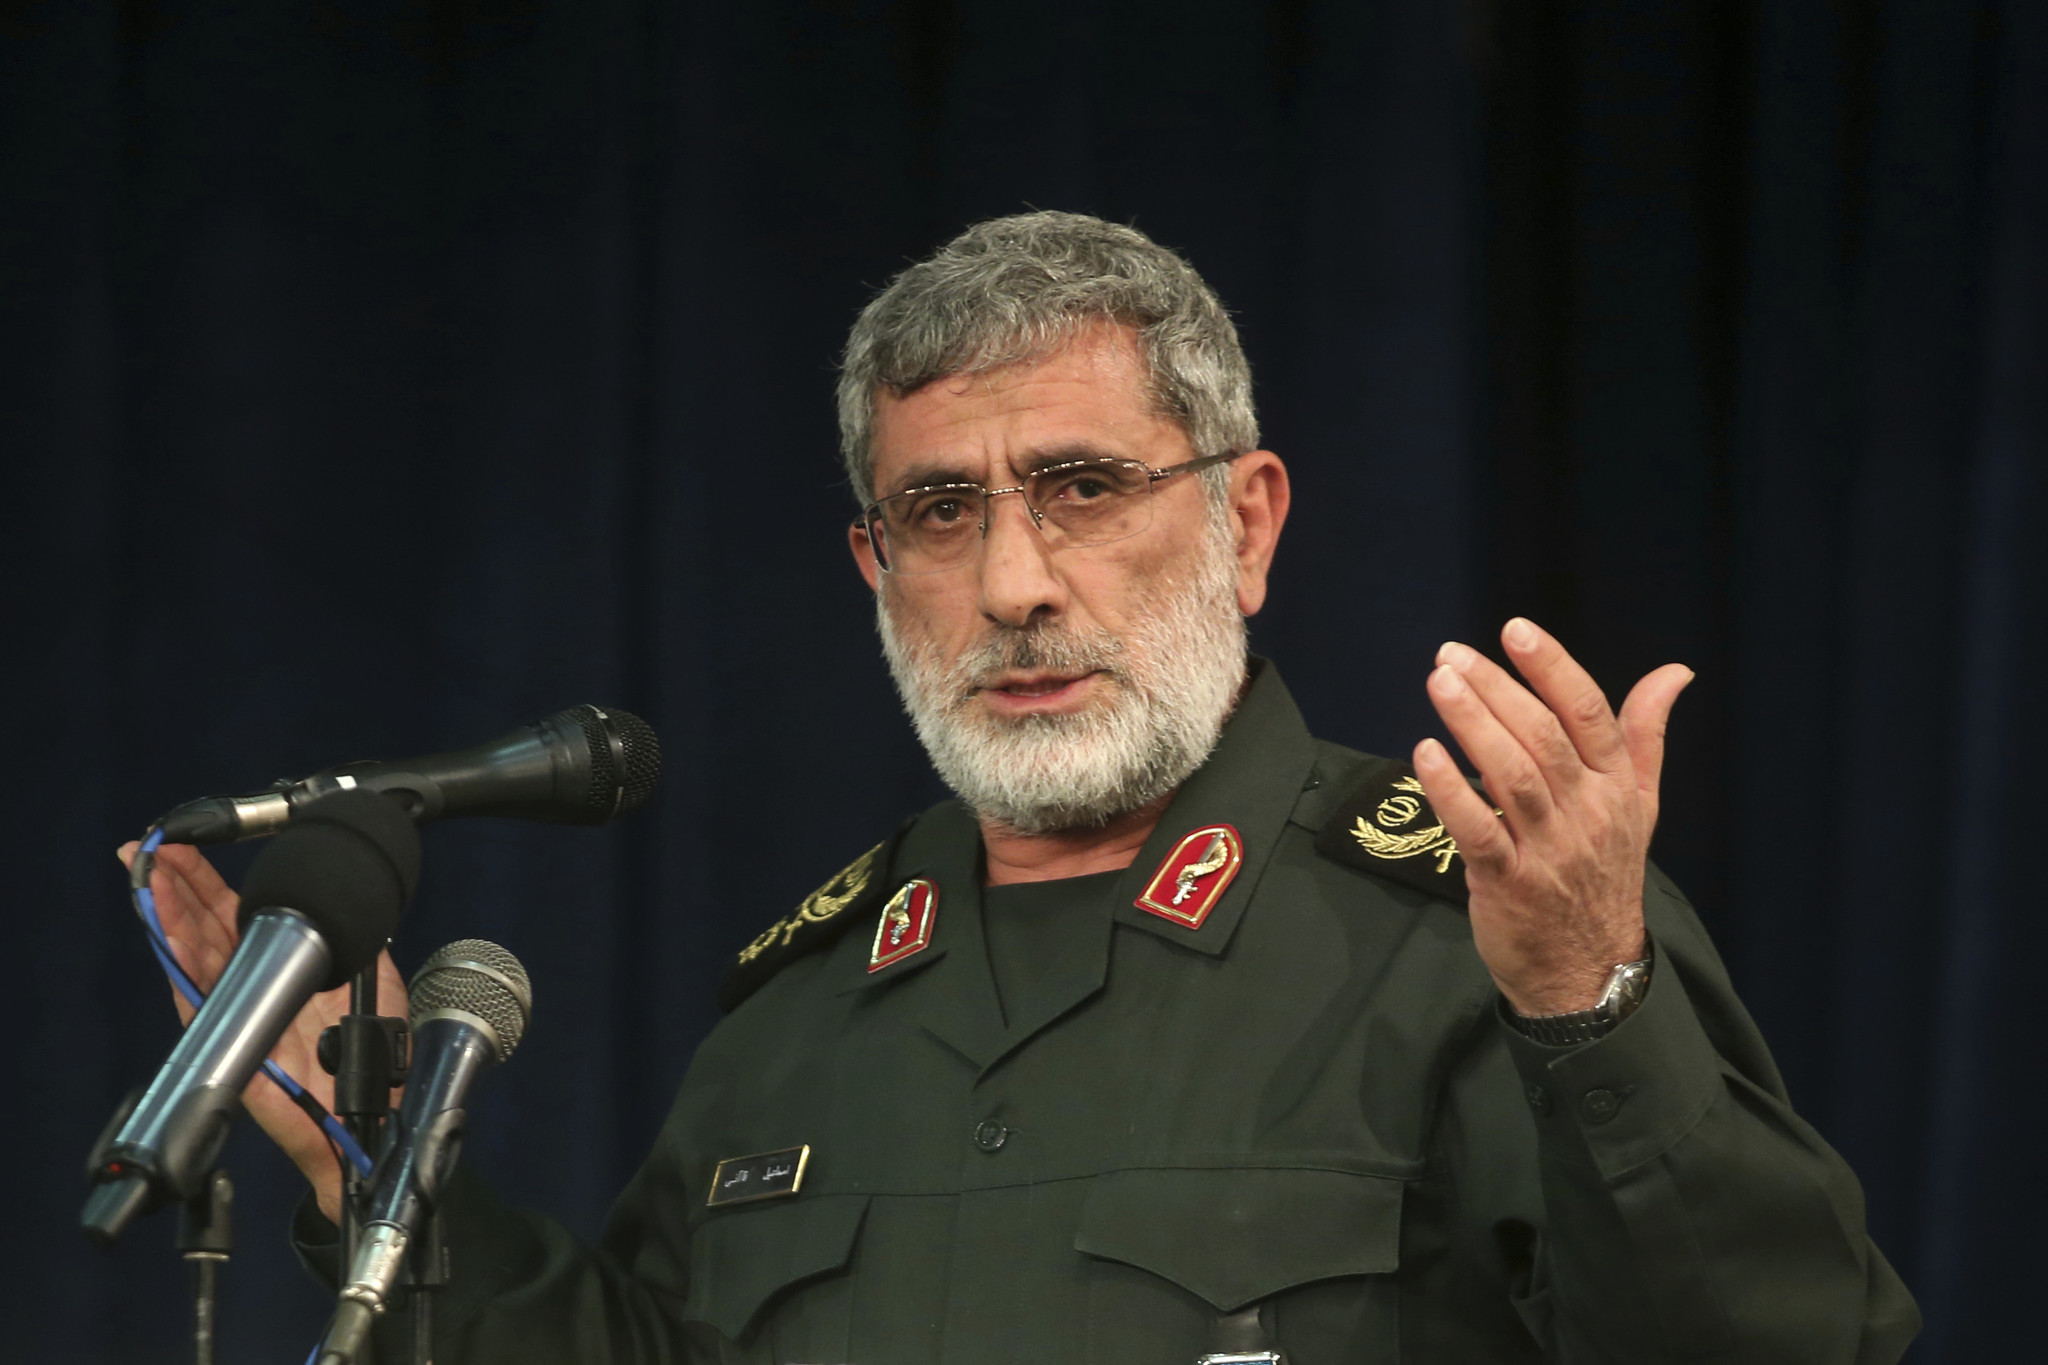 Esmail Ghaani, friend and fellow fighter of slain Iranian general Qassem Soleimani, named as new leader of Quds Force